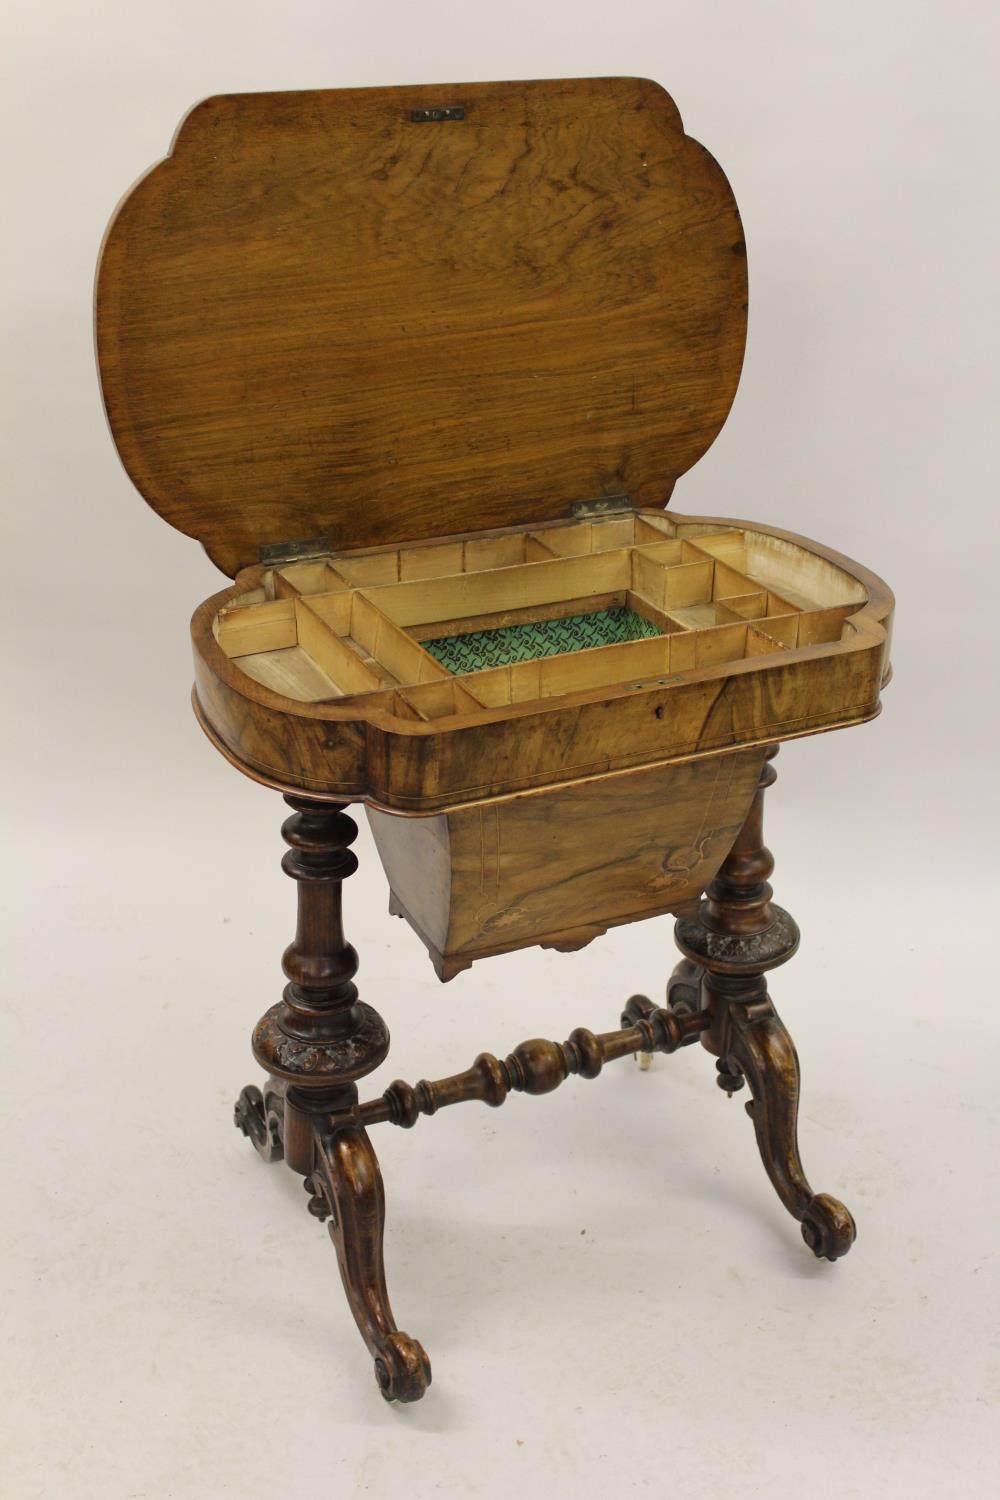 Victorian figured walnut marquetry inlaid work table, the hinged top enclosing a fitted interior and - Image 2 of 2